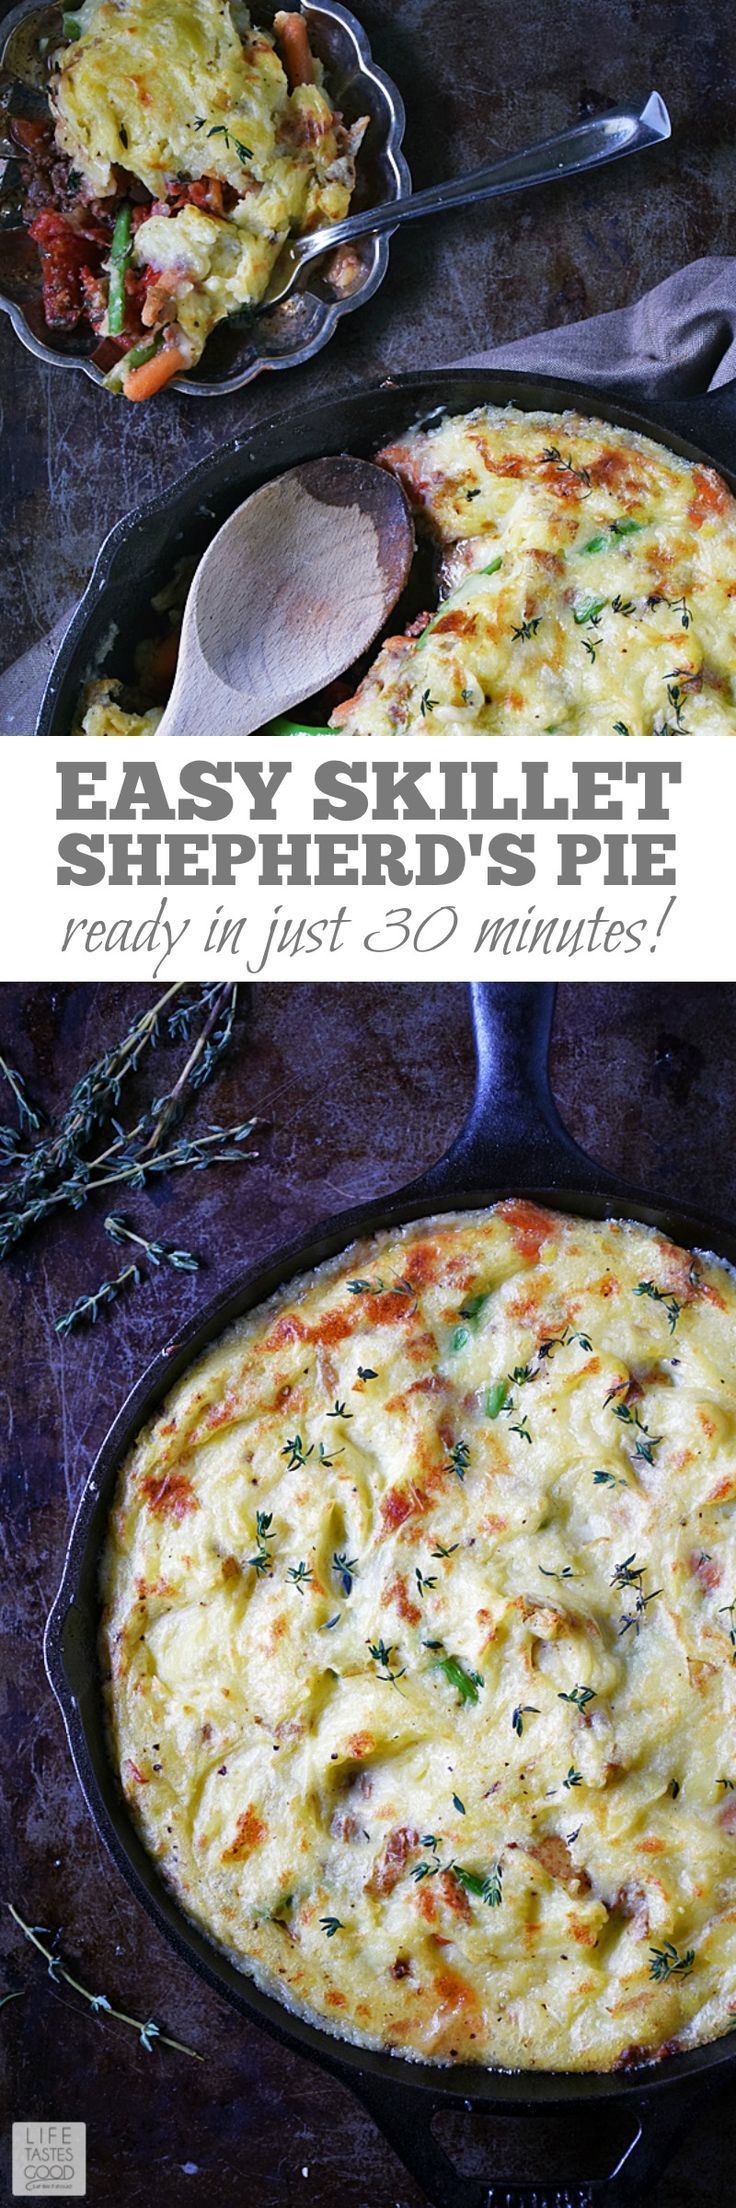 Skillet Shepherd's Pie is a meaty, savory, comfort food classic dish cooked in a skillet for an easy recipe ready in just 30 minutes! This recipe uses fresh ingredients for maximum flavor the whole family will love! Get your Irish on and enjoy this recipe for St. Patrick's Day! by Life Tastes Good #LTGrecipes #shepherdspie #skilletrecipe #beefrecipe #mashedpotatoes #easyrecipe #comfortfood